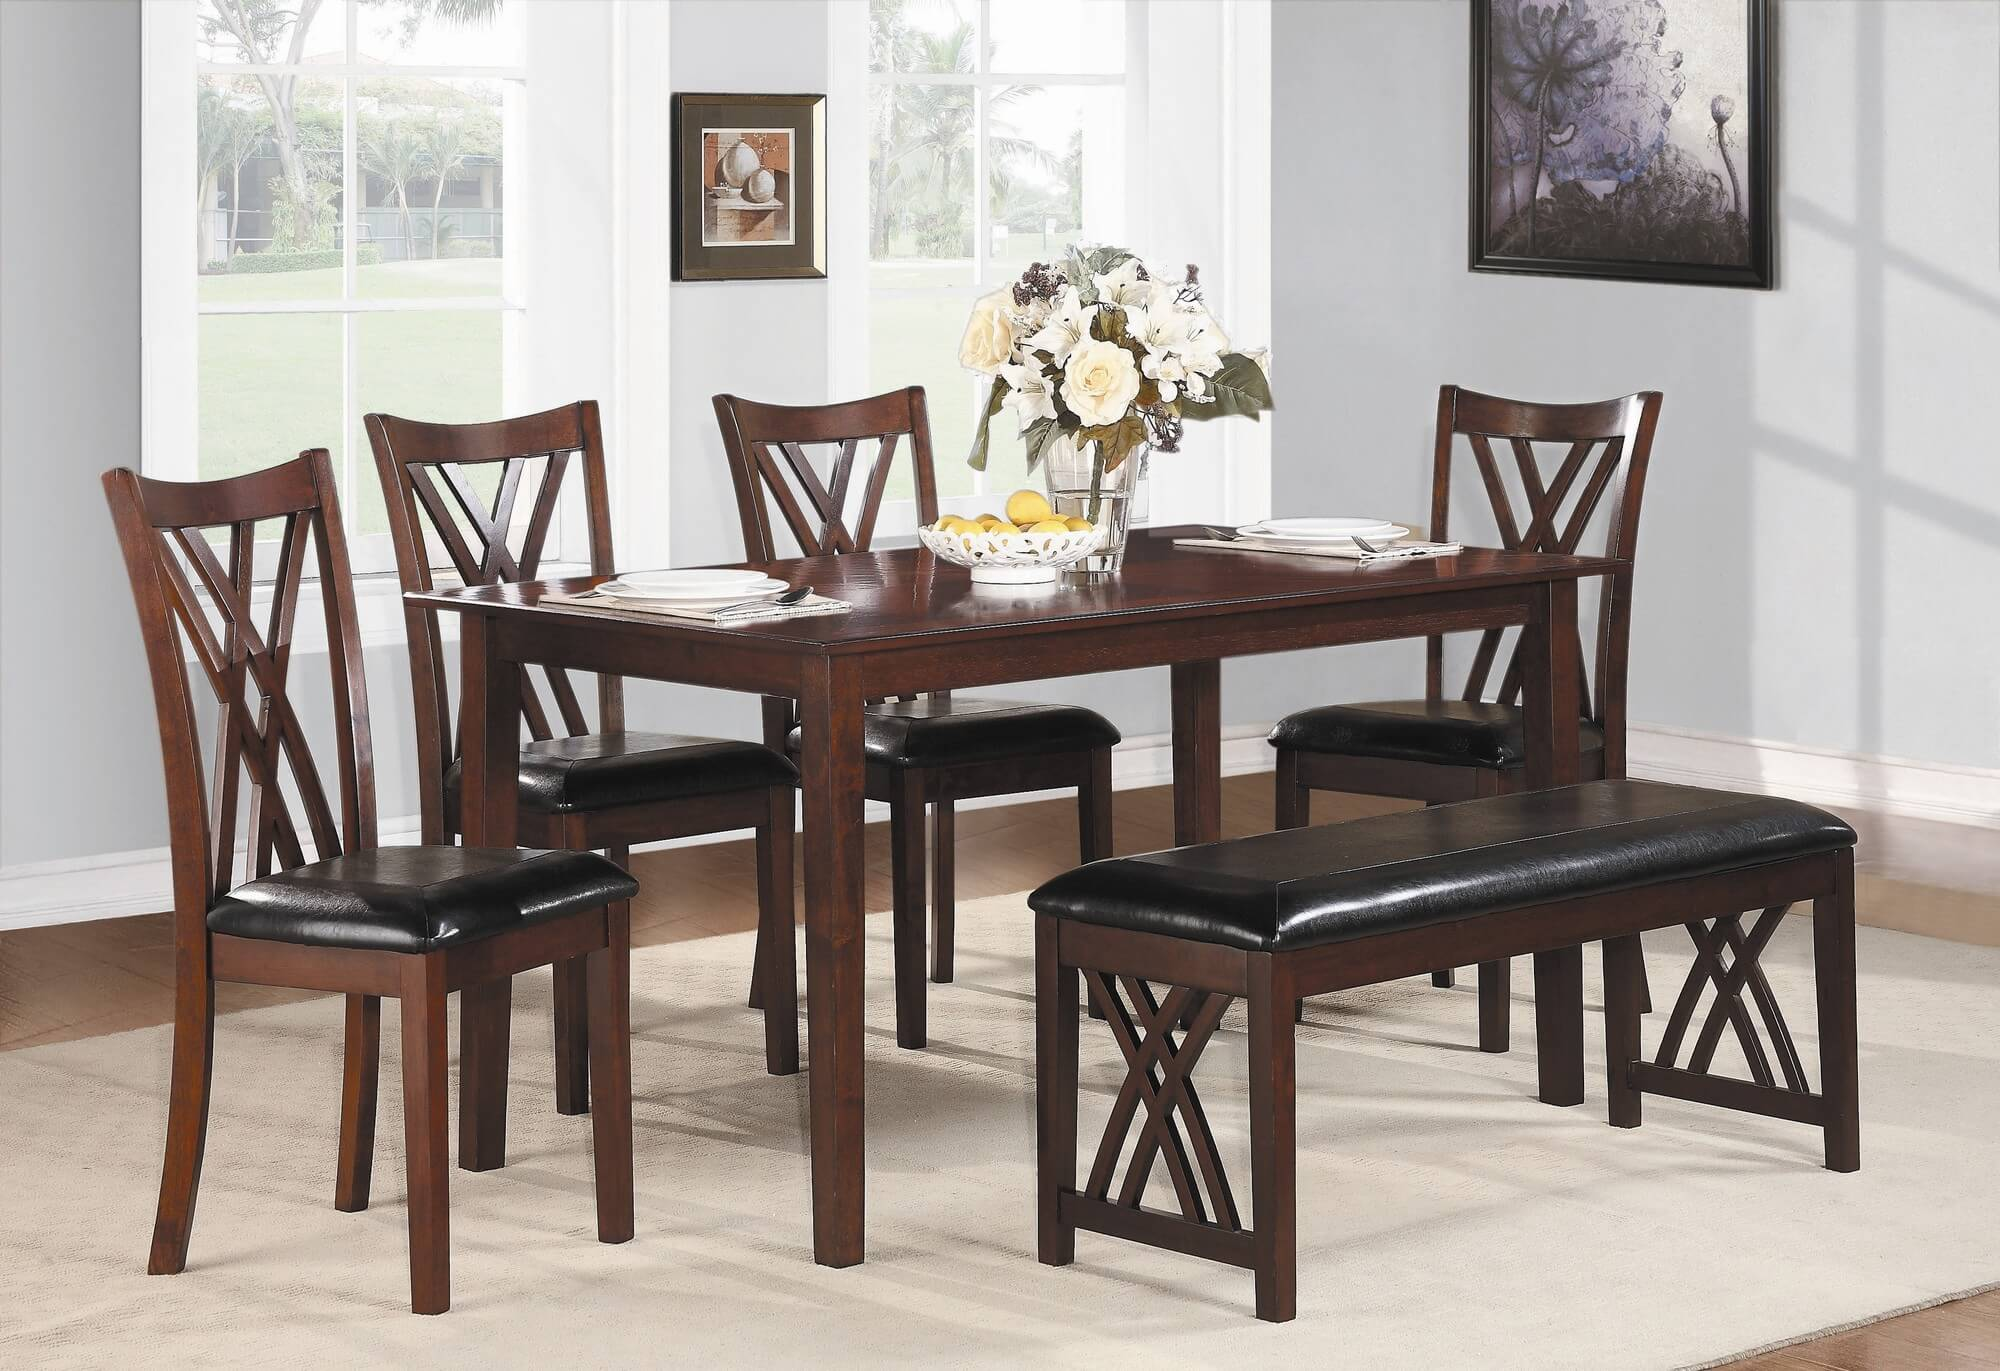 Six piece dining set with bench with a cherry finish and upholstered chairs and bench.